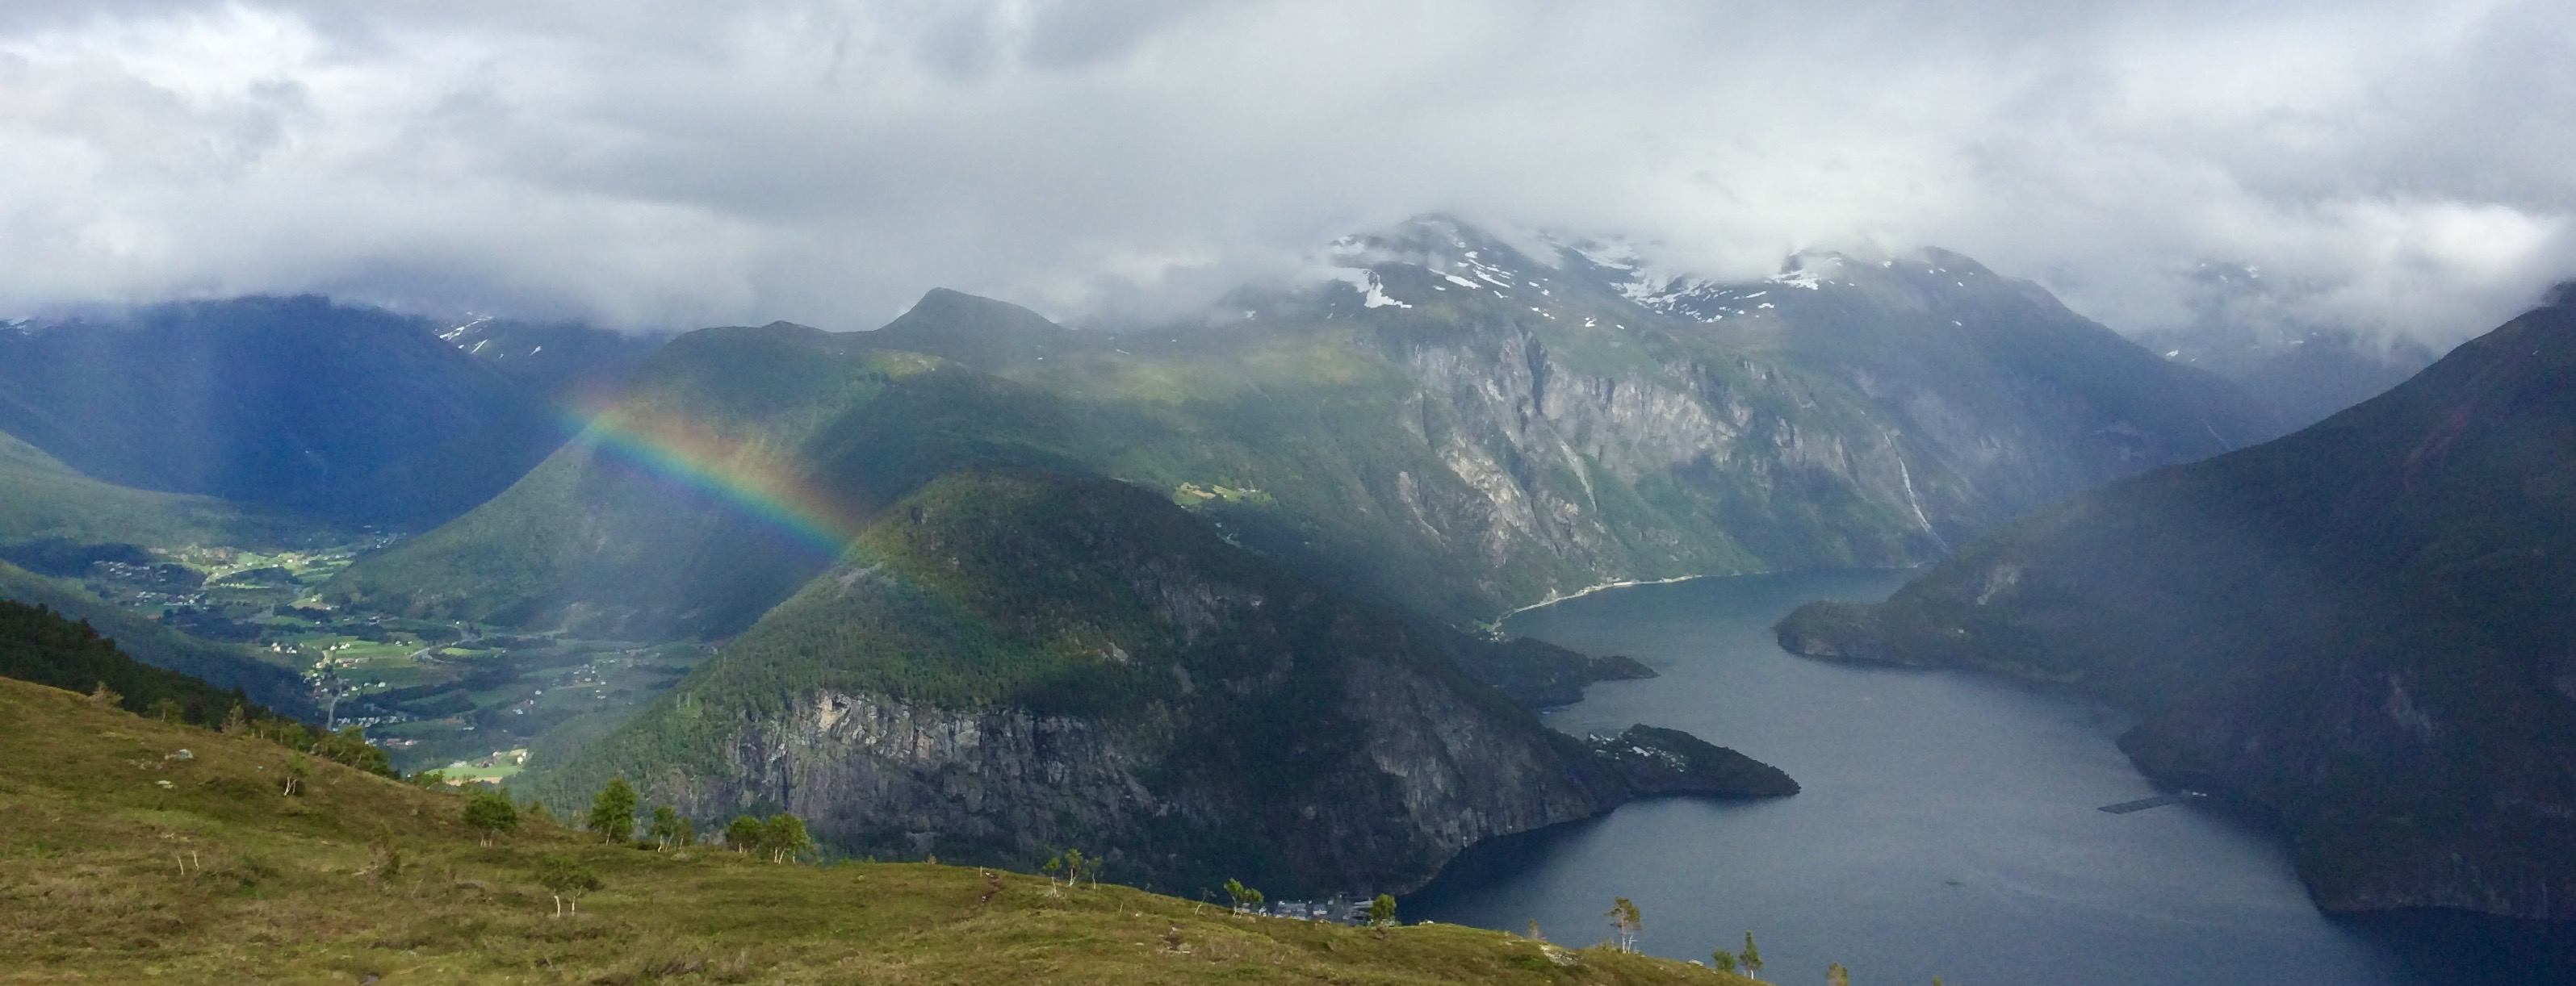 Rainbow over Norwegian area of Valldal